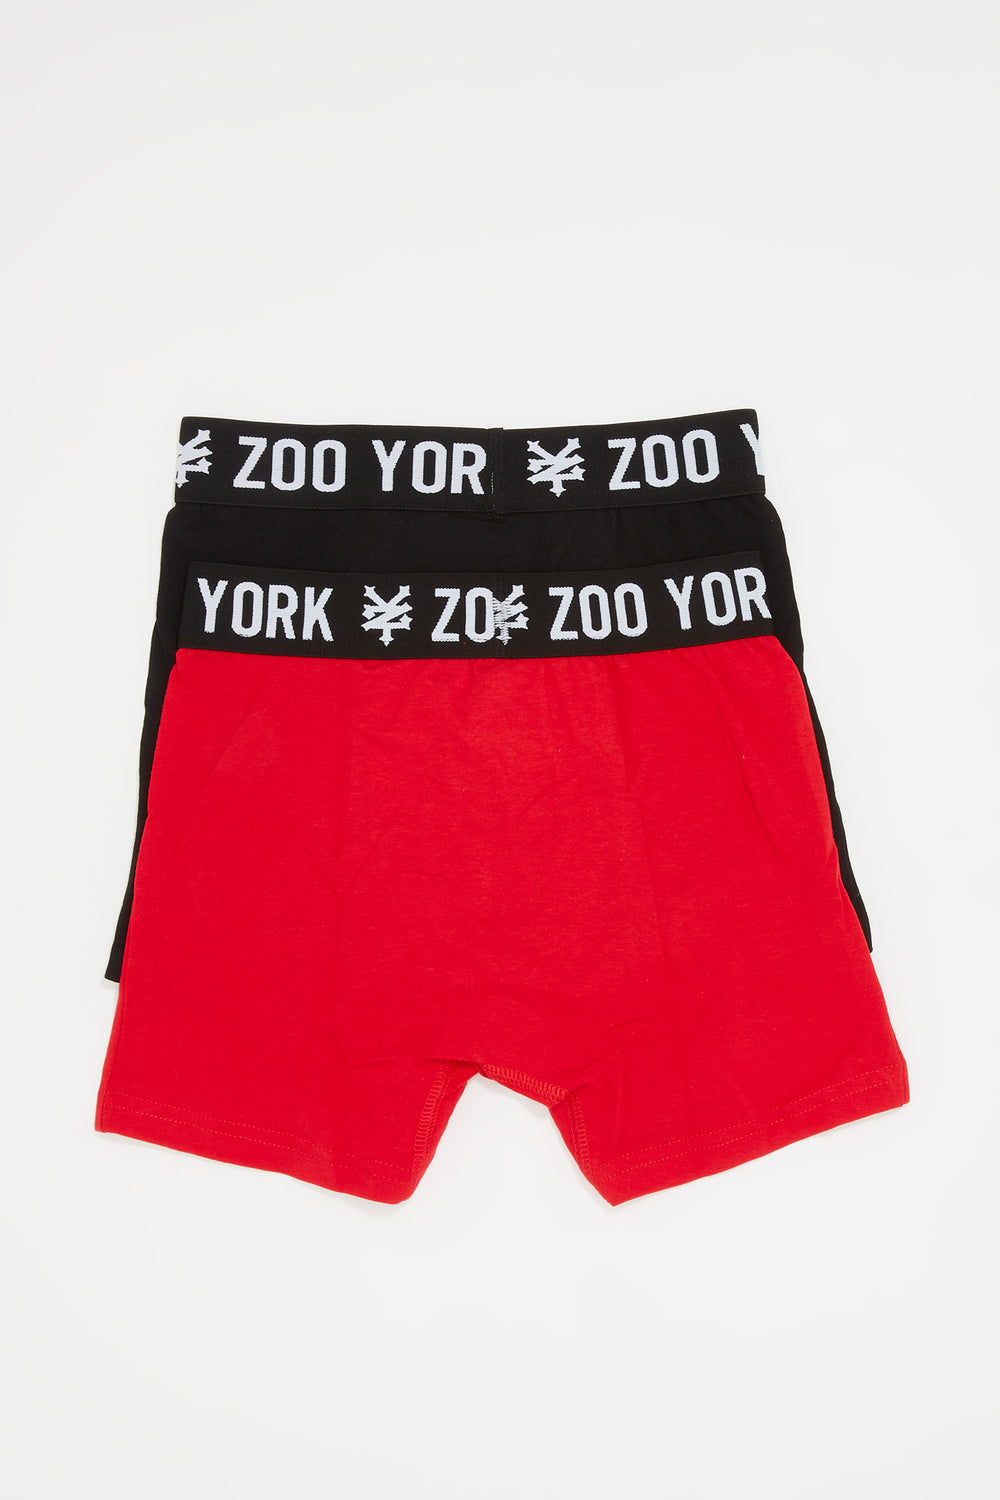 Zoo York Mens 2-Pack Cotton Boxer Briefs Red